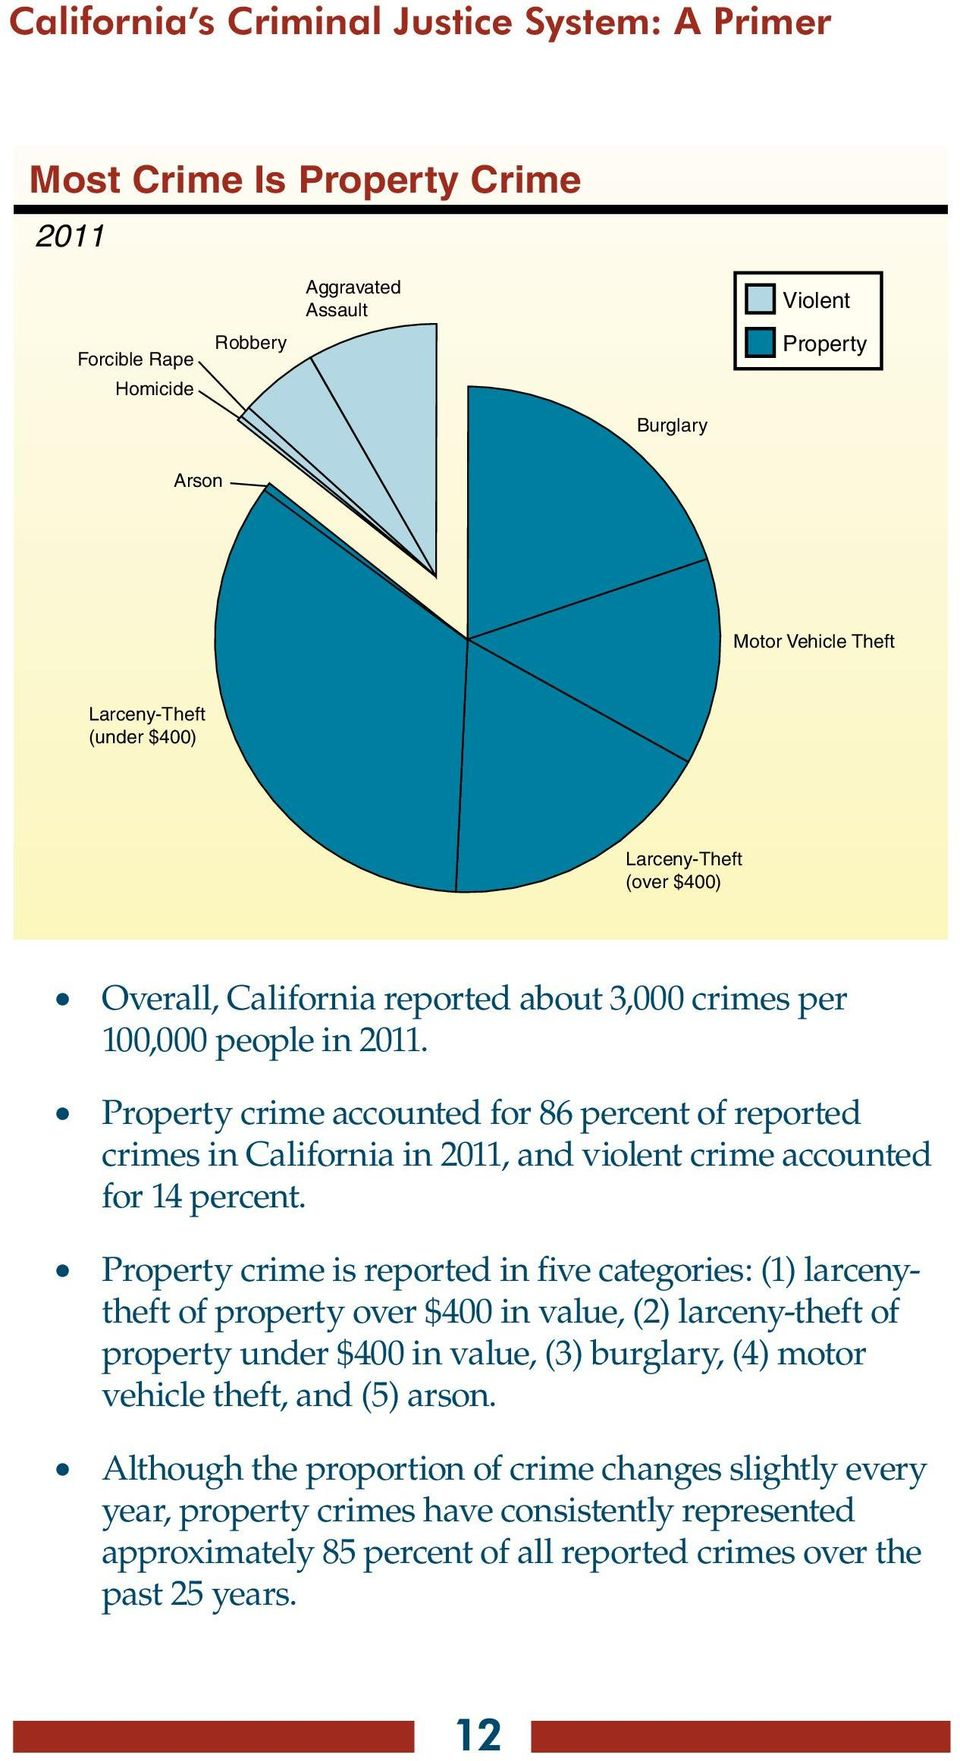 Property crime accounted for 86 percent of reported crimes in California in 2011, and violent crime accounted for 14 percent.